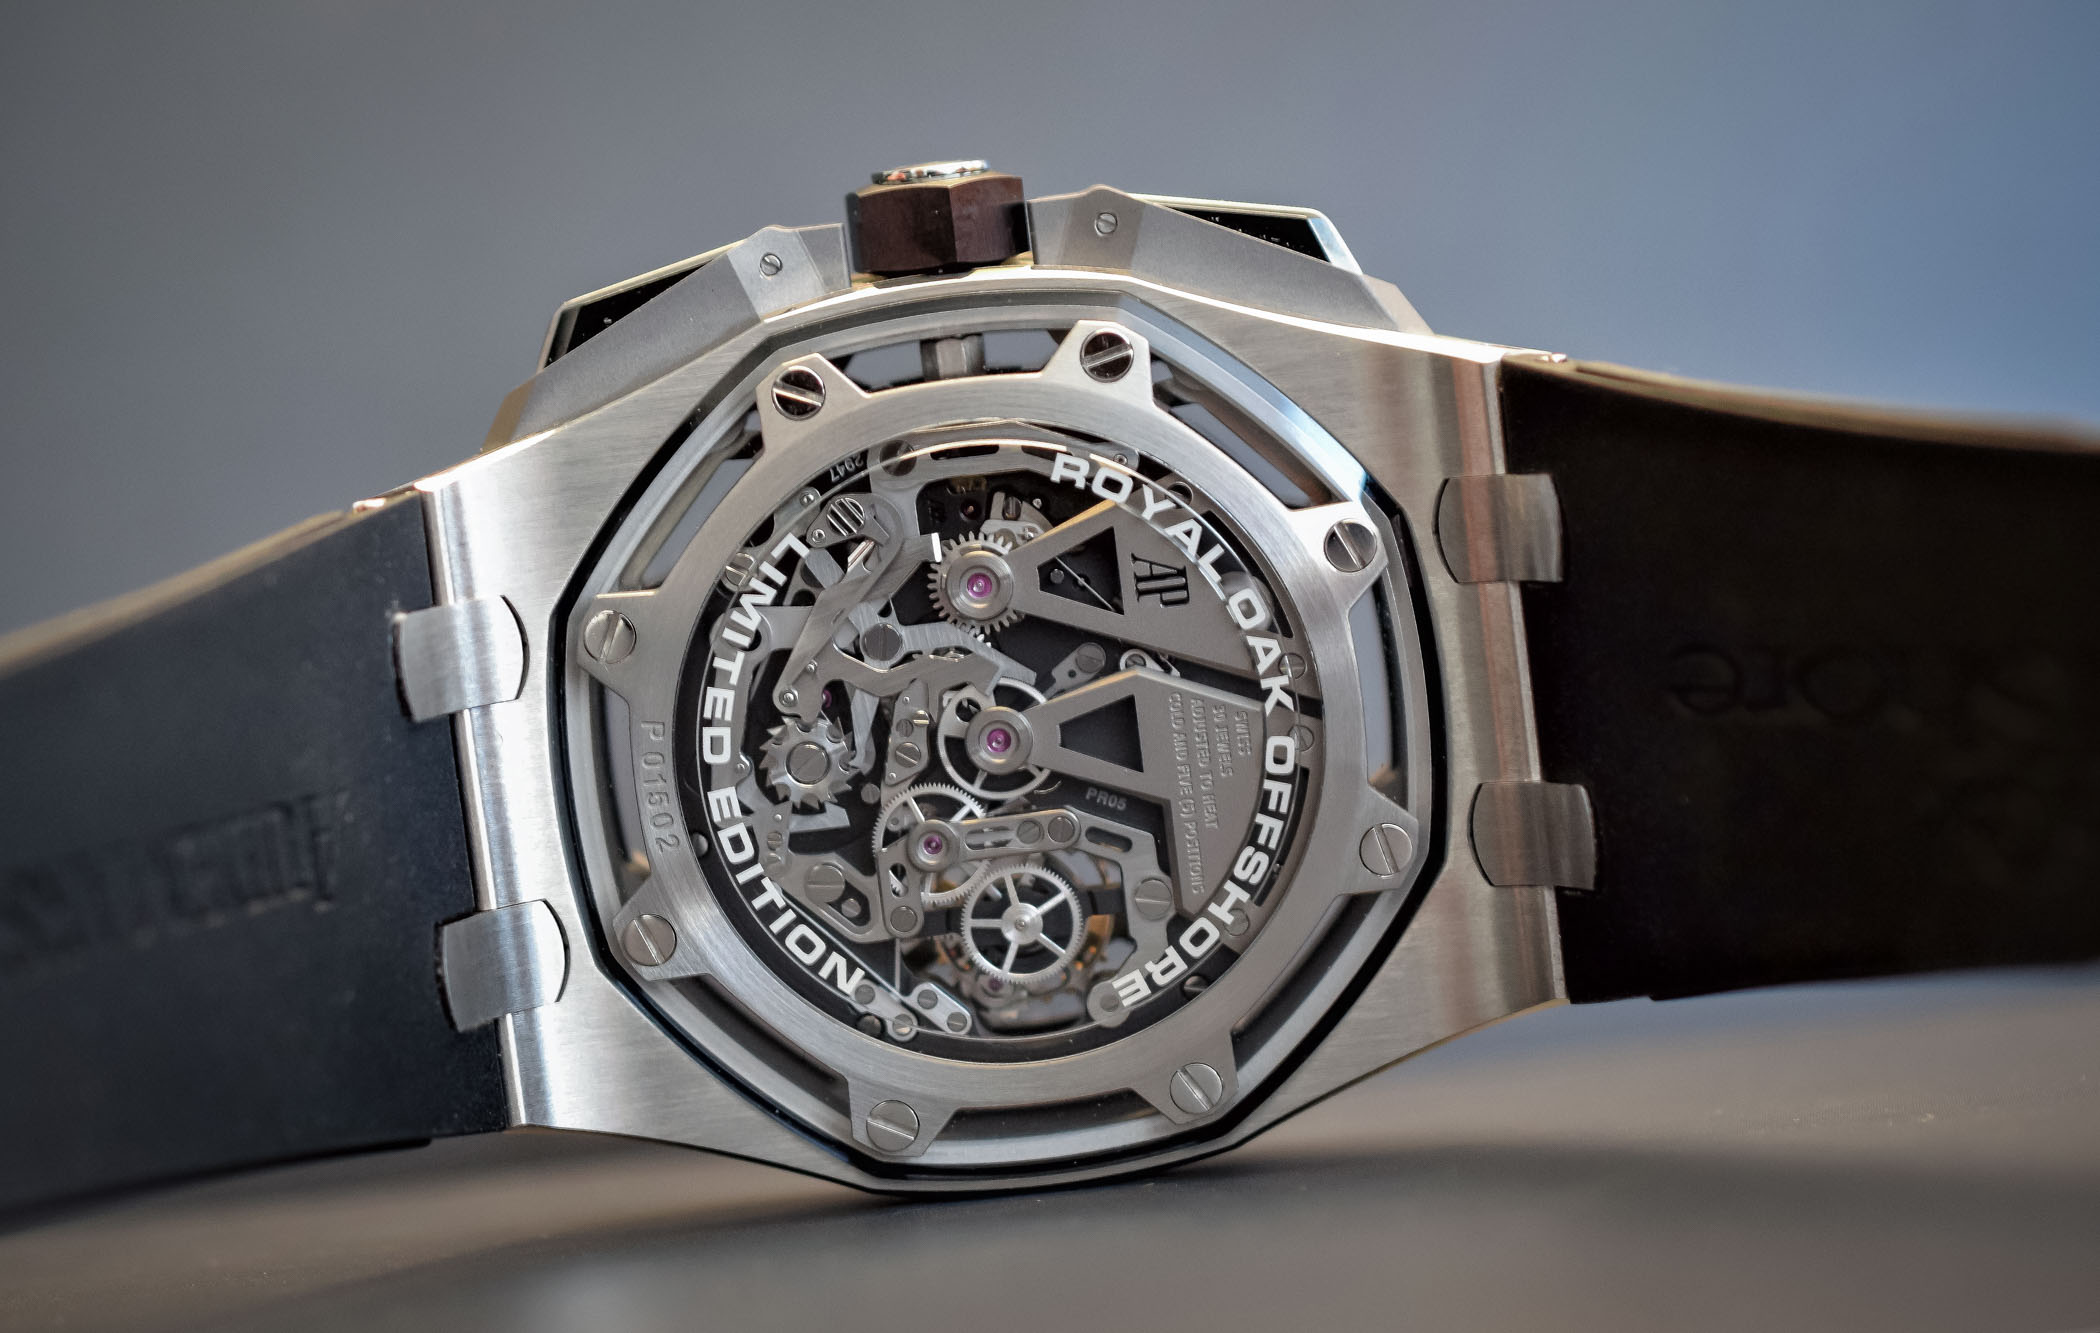 Audemars Piguet Royal Oak Offshore Tourbillon Chronograph 25th anniversary 26421